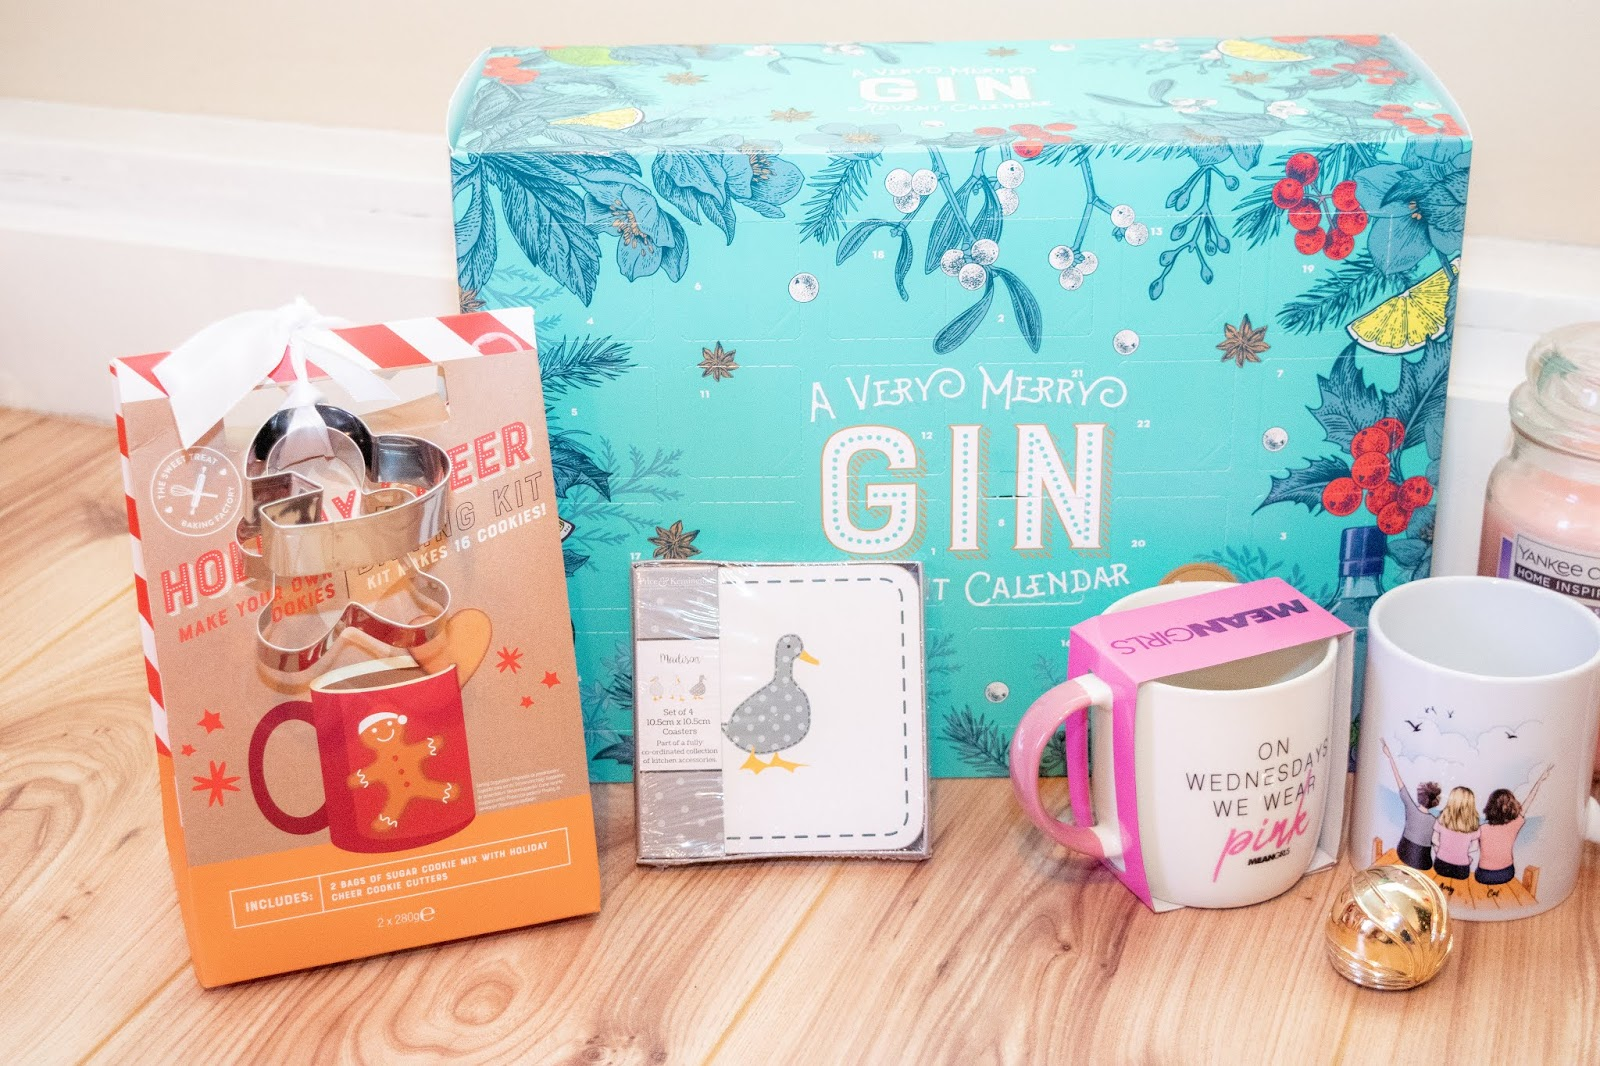 Food and home related gifts: gin advent calendar, gingerbread baking kit, coasters.